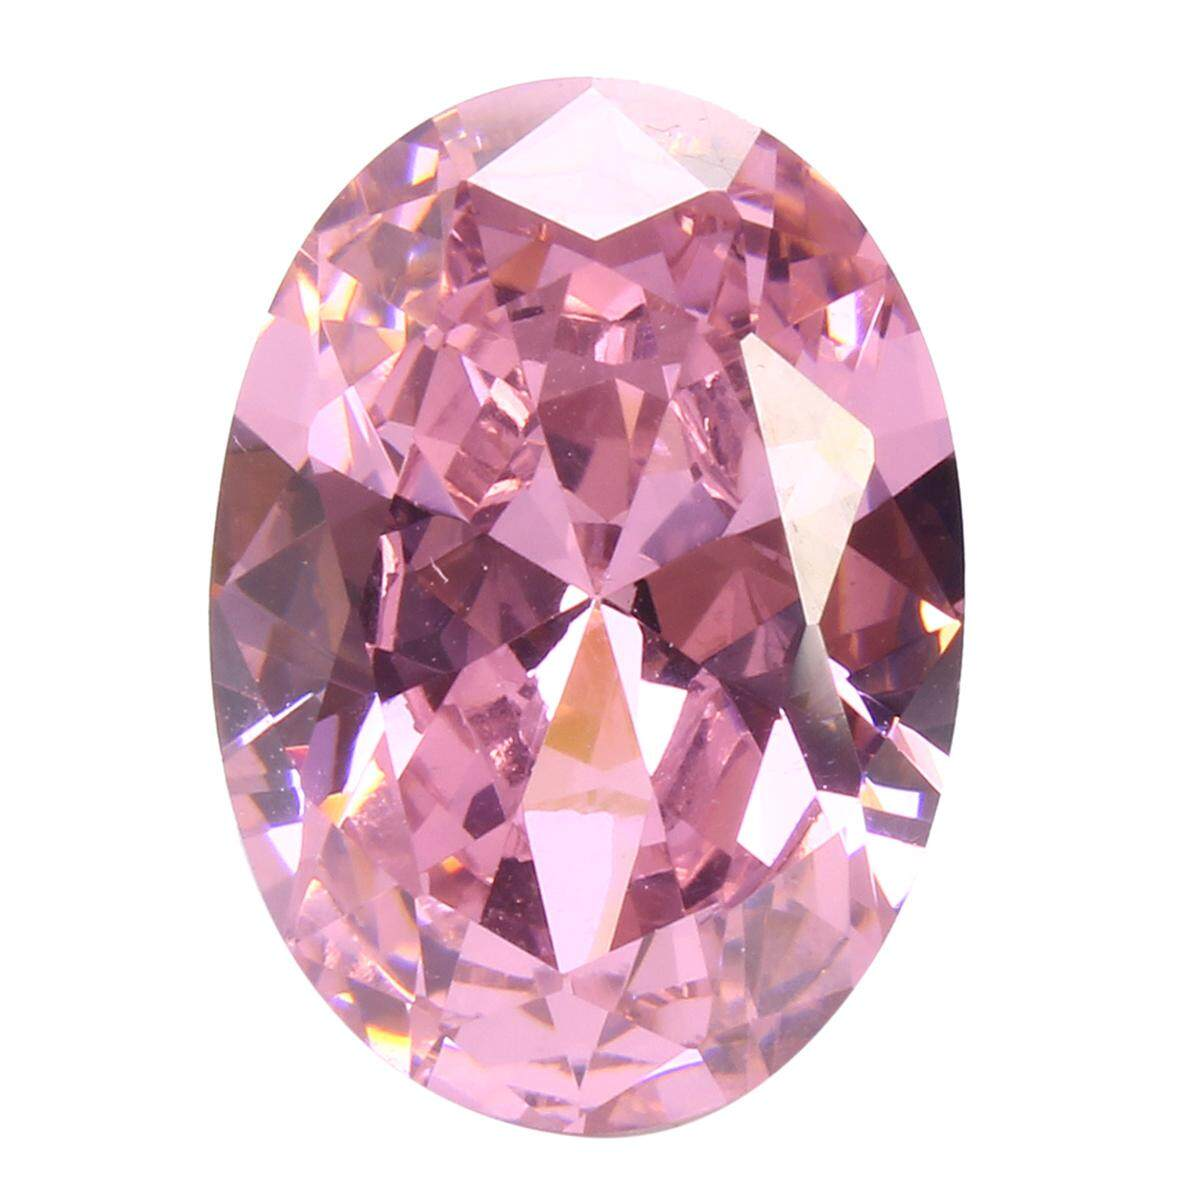 Aaa Pale Pink Sapphire Gems Oval Faceted Cut 4.26ct Vvs Loose Gemstone 5 Sizes [10*14] By Channy.